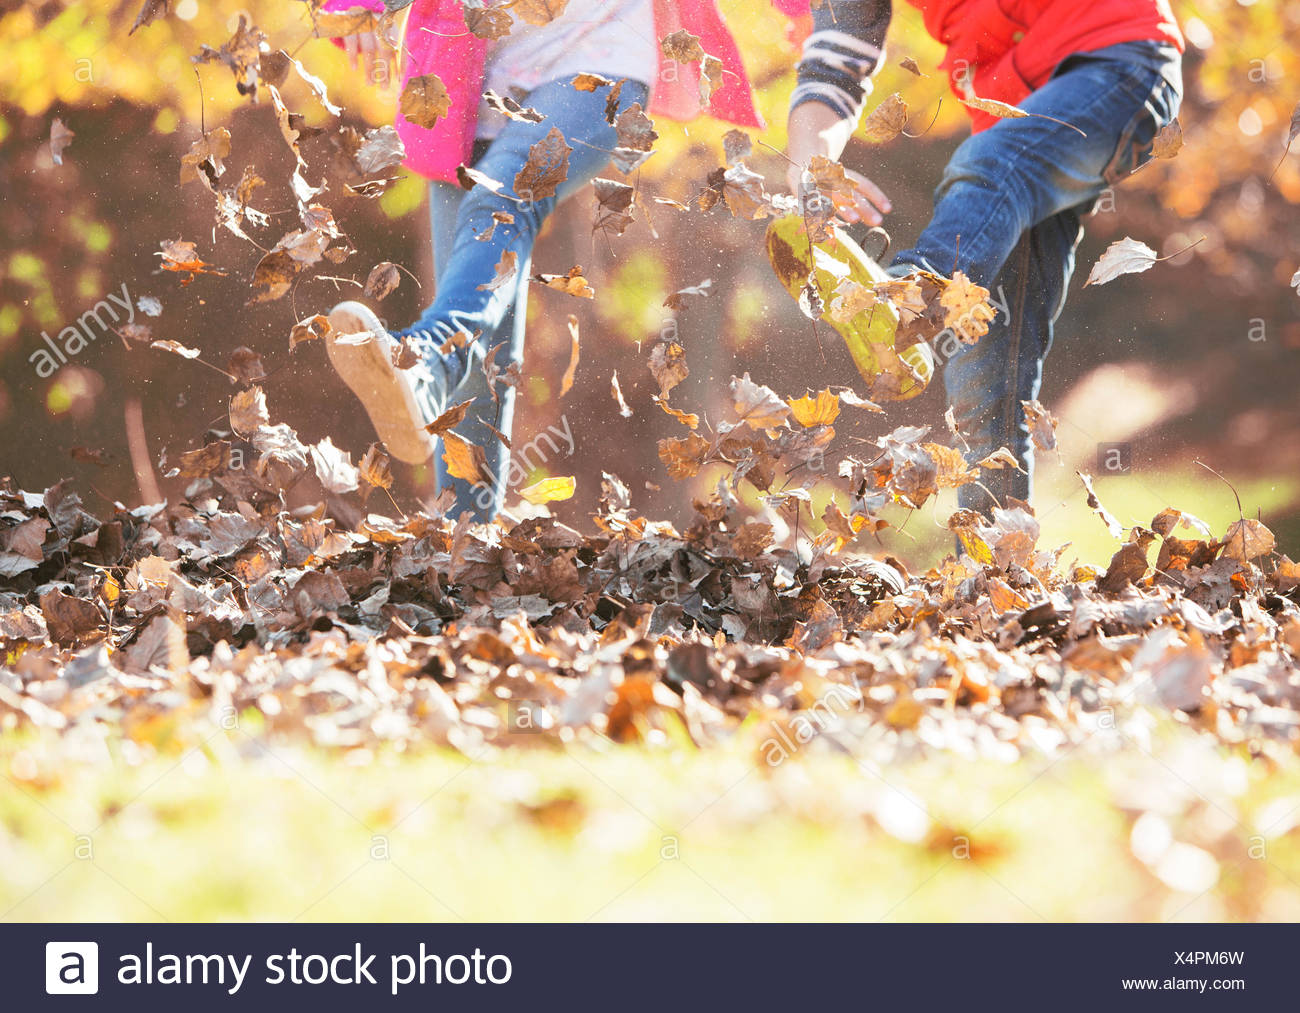 Boy and girl kicking in autumn leaves - Stock Image